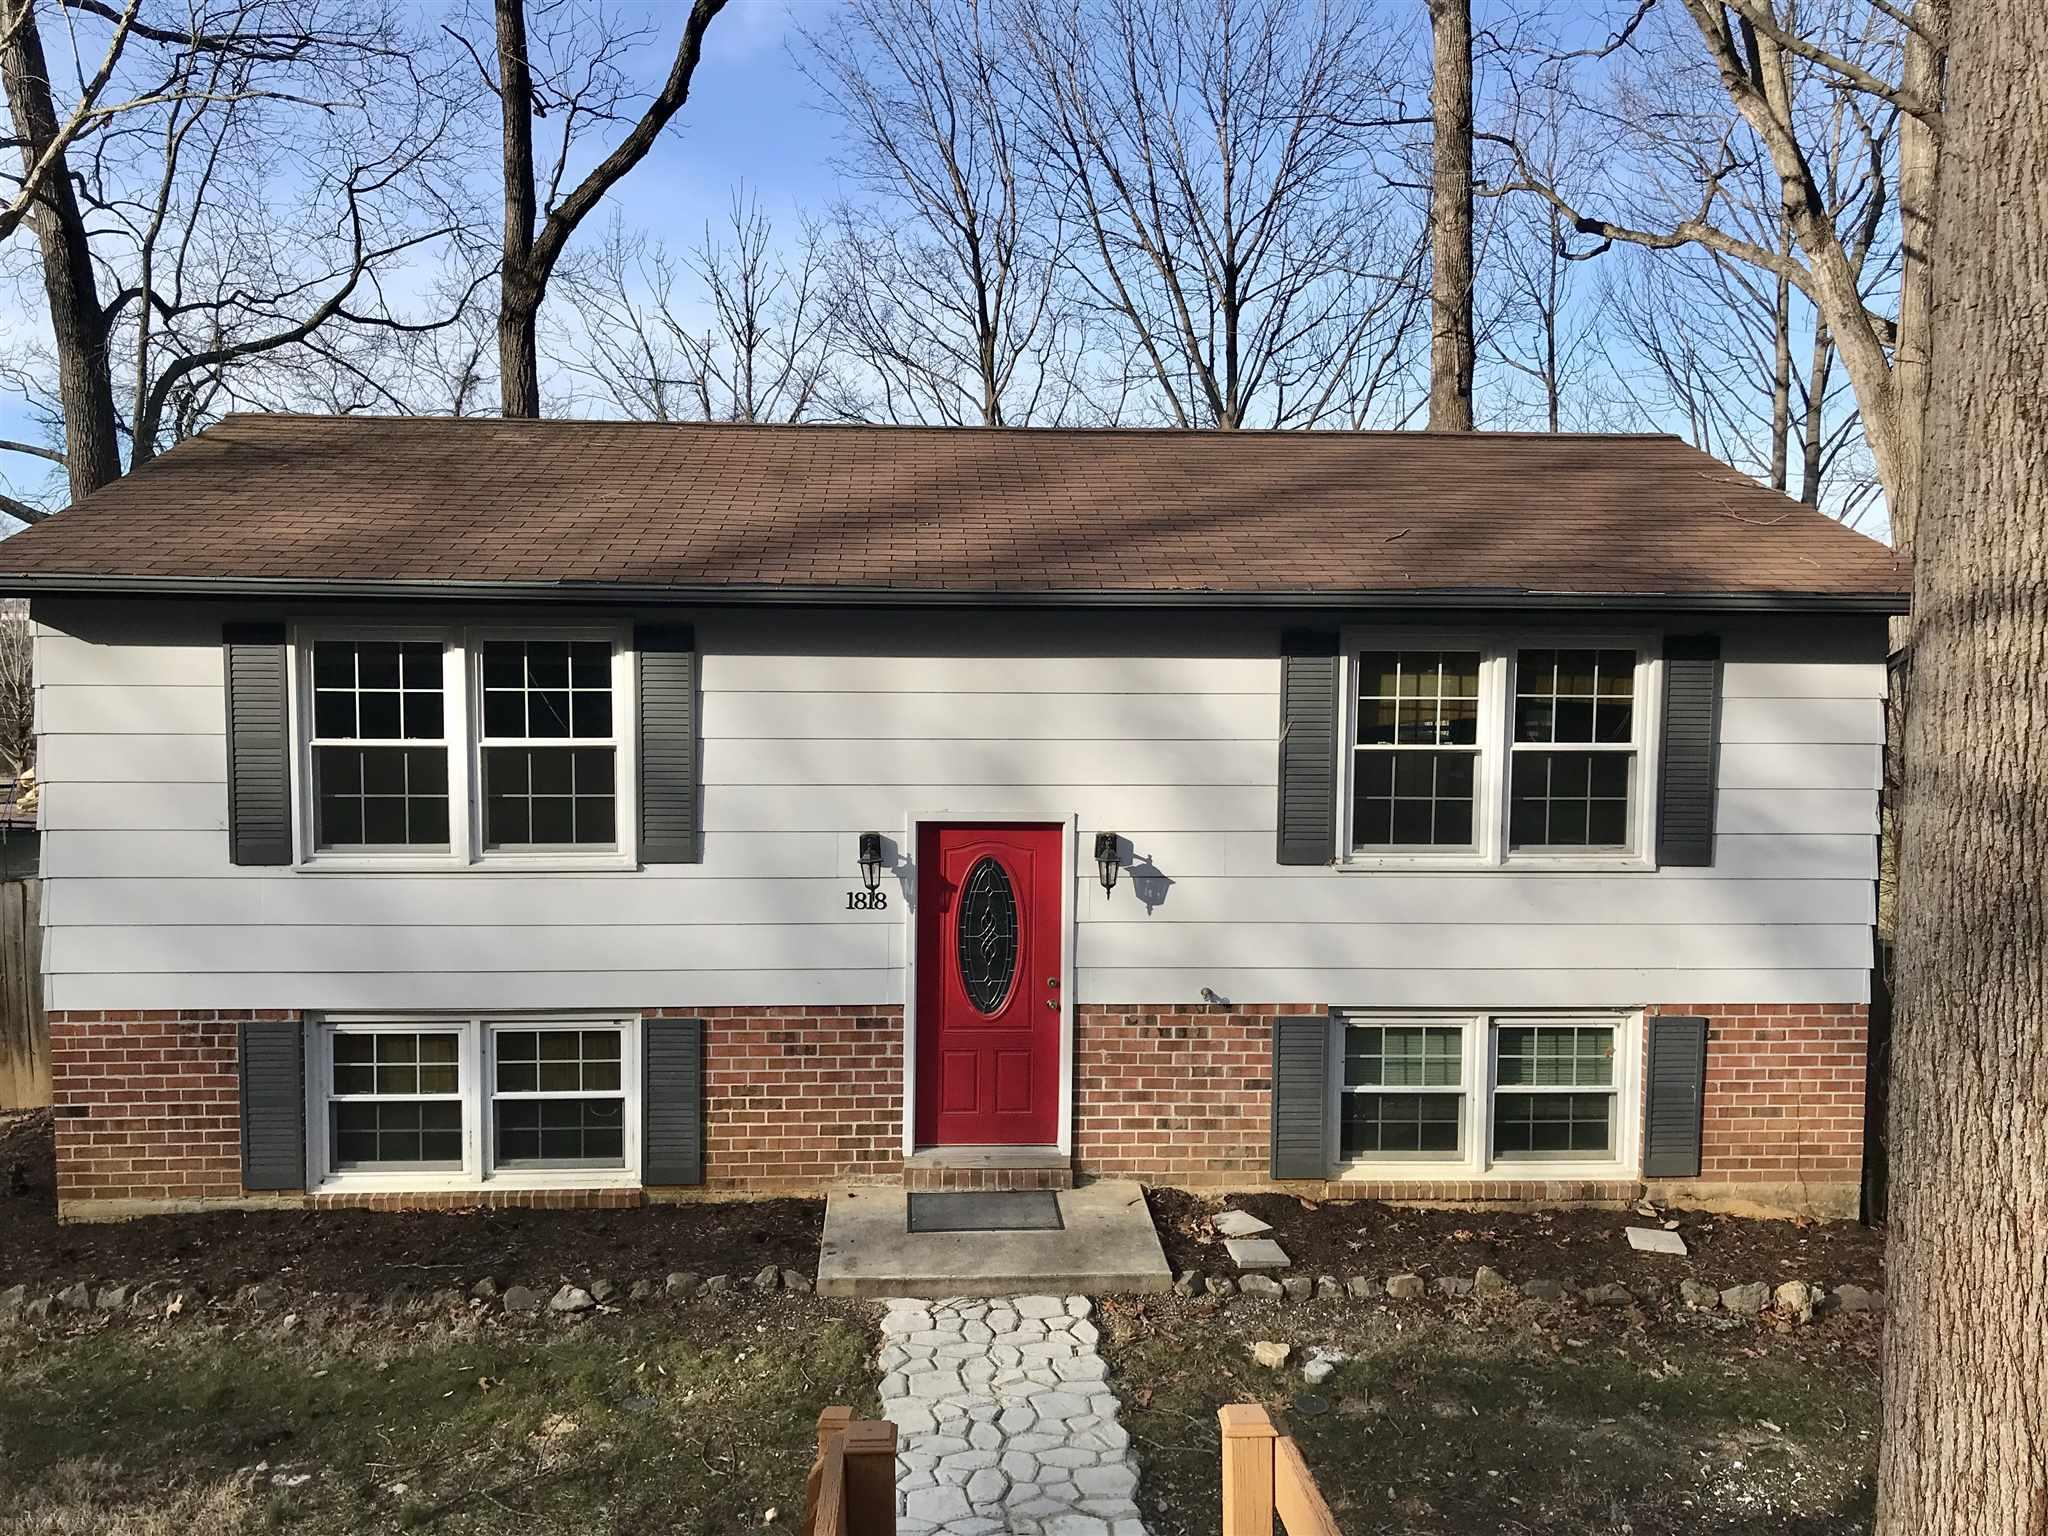 This 4BR/2BA Blacksburg home with a fenced-in backyard has two generous sized decks overlooking the flat backyard which over looks Nellie's Cave Park! Hardwood floors throughout main level and the white, bright and airy kitchen boasts stainless steel appliances. Both full bathrooms have lovely ceramic tile. Downstairs has laminate bamboo flooring and a walk out to the backyard. Replacement windows throughout.   New exterior paint.  Located in the quiet neighborhood of Crestwood Garden. Close to Virginia Tech, bus stop, South Main Kroger and Downtown Blacksburg.